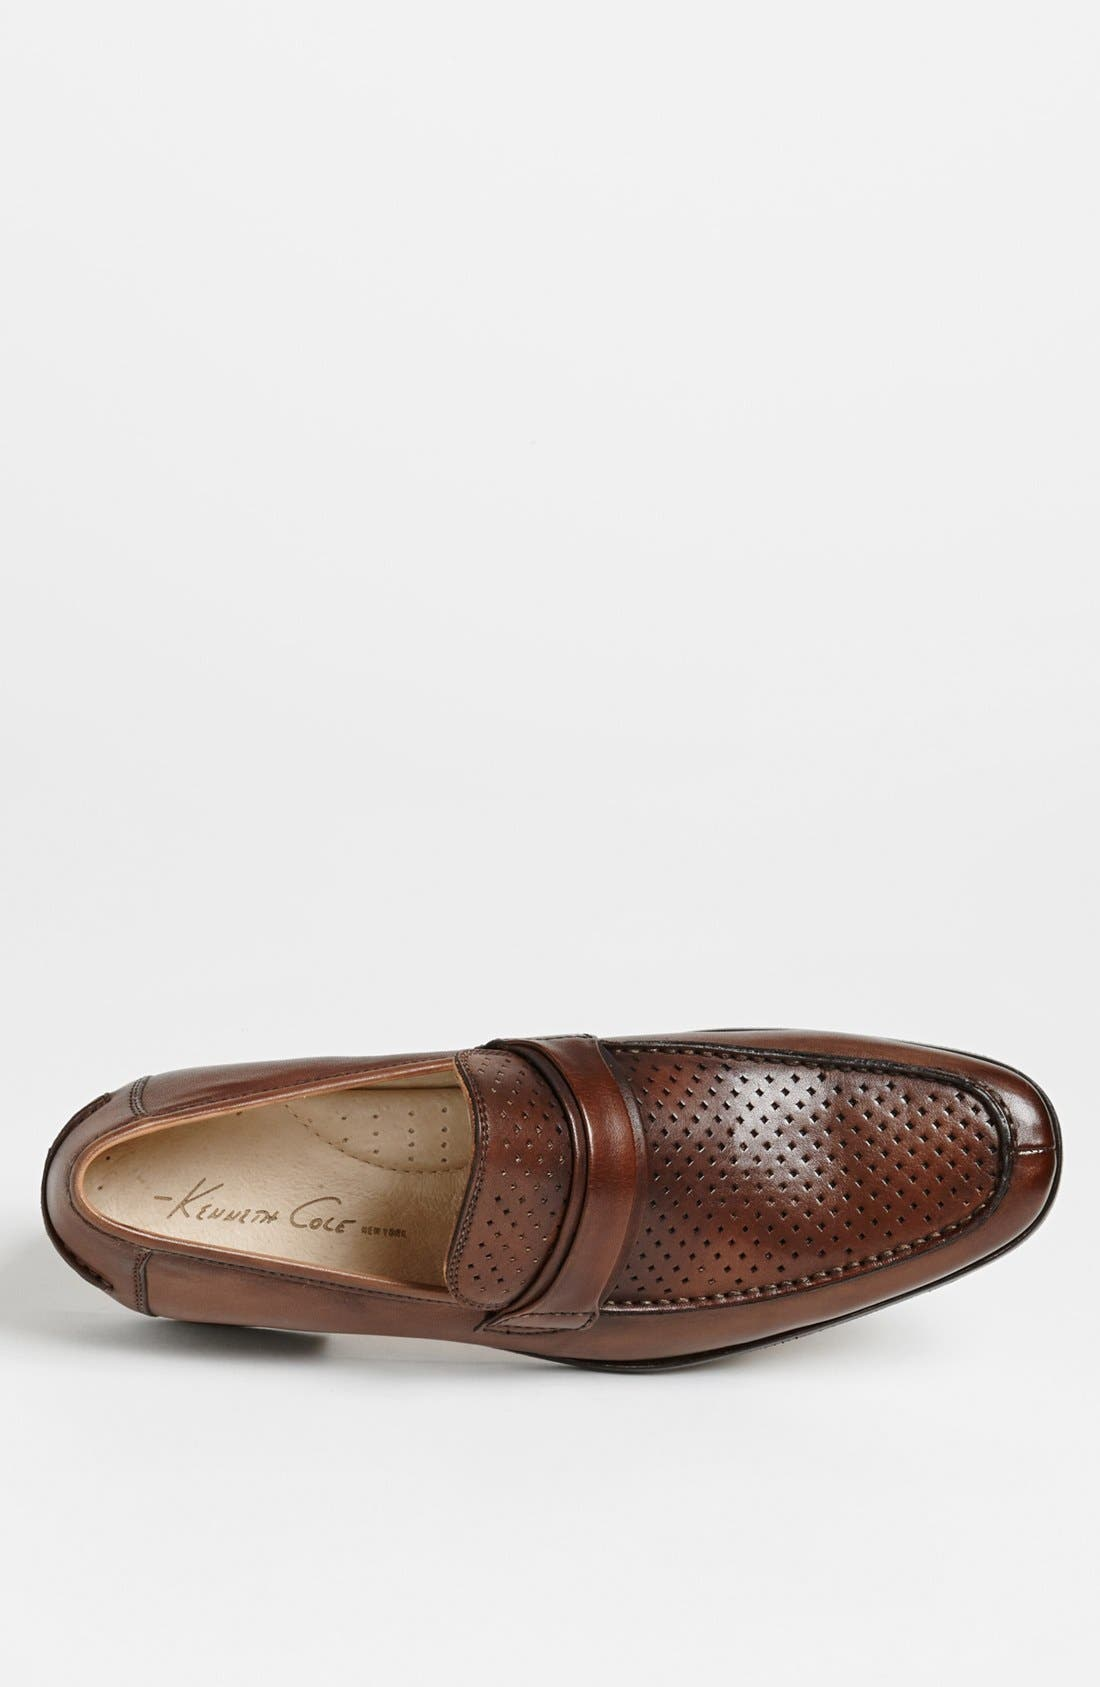 Alternate Image 3  - Kenneth Cole New York 'Bigger Than Me' Loafer